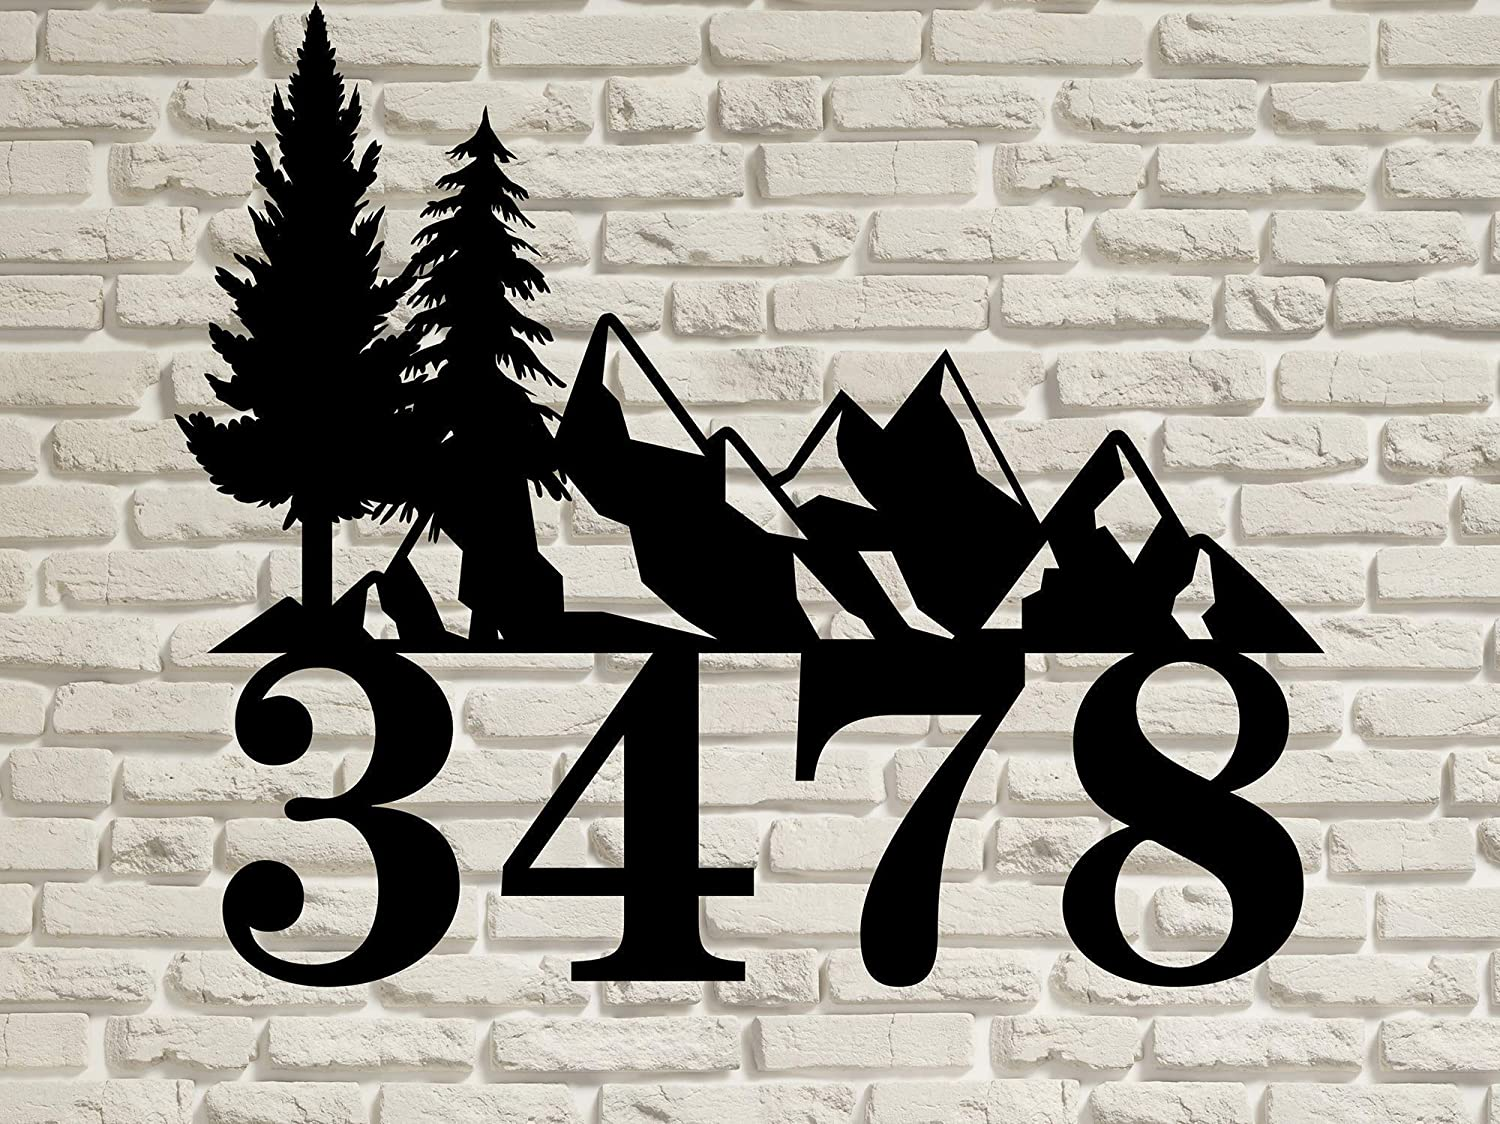 Mountain Sales of SALE Max 53% OFF items from new works Landscape - Personalized Steel Address Solid Decorative